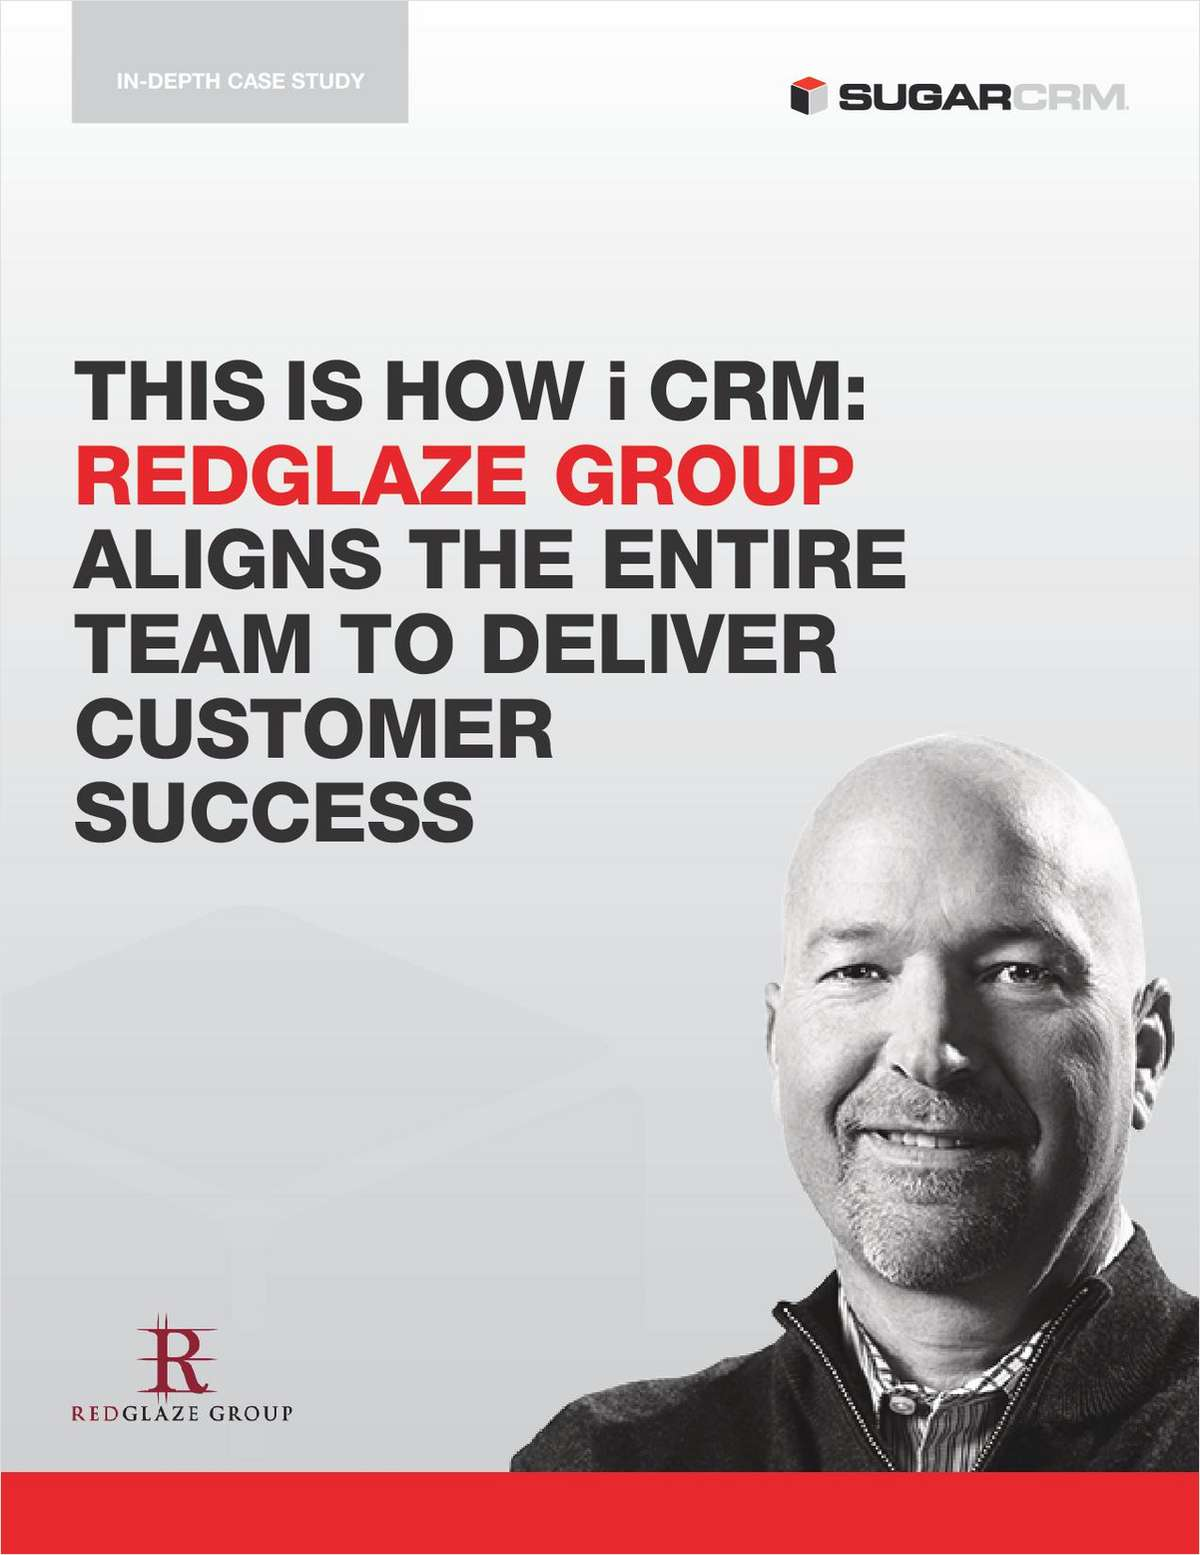 This is How i CRM: Redglaze Group Aligns the Entire Team to Deliver Customer Success